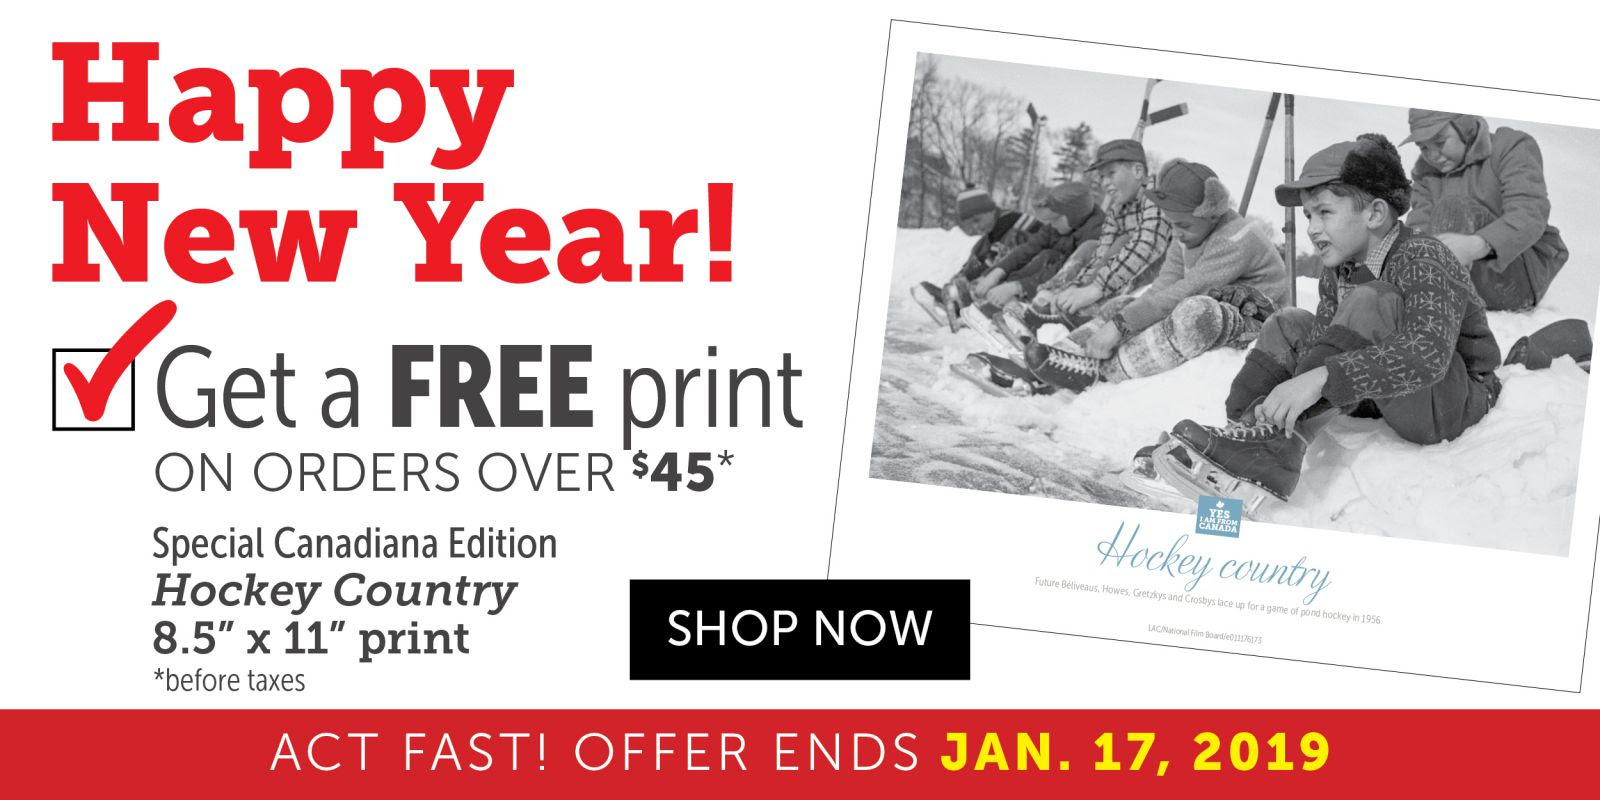 Happy New Year! Get a FREE Print on orders over $45!